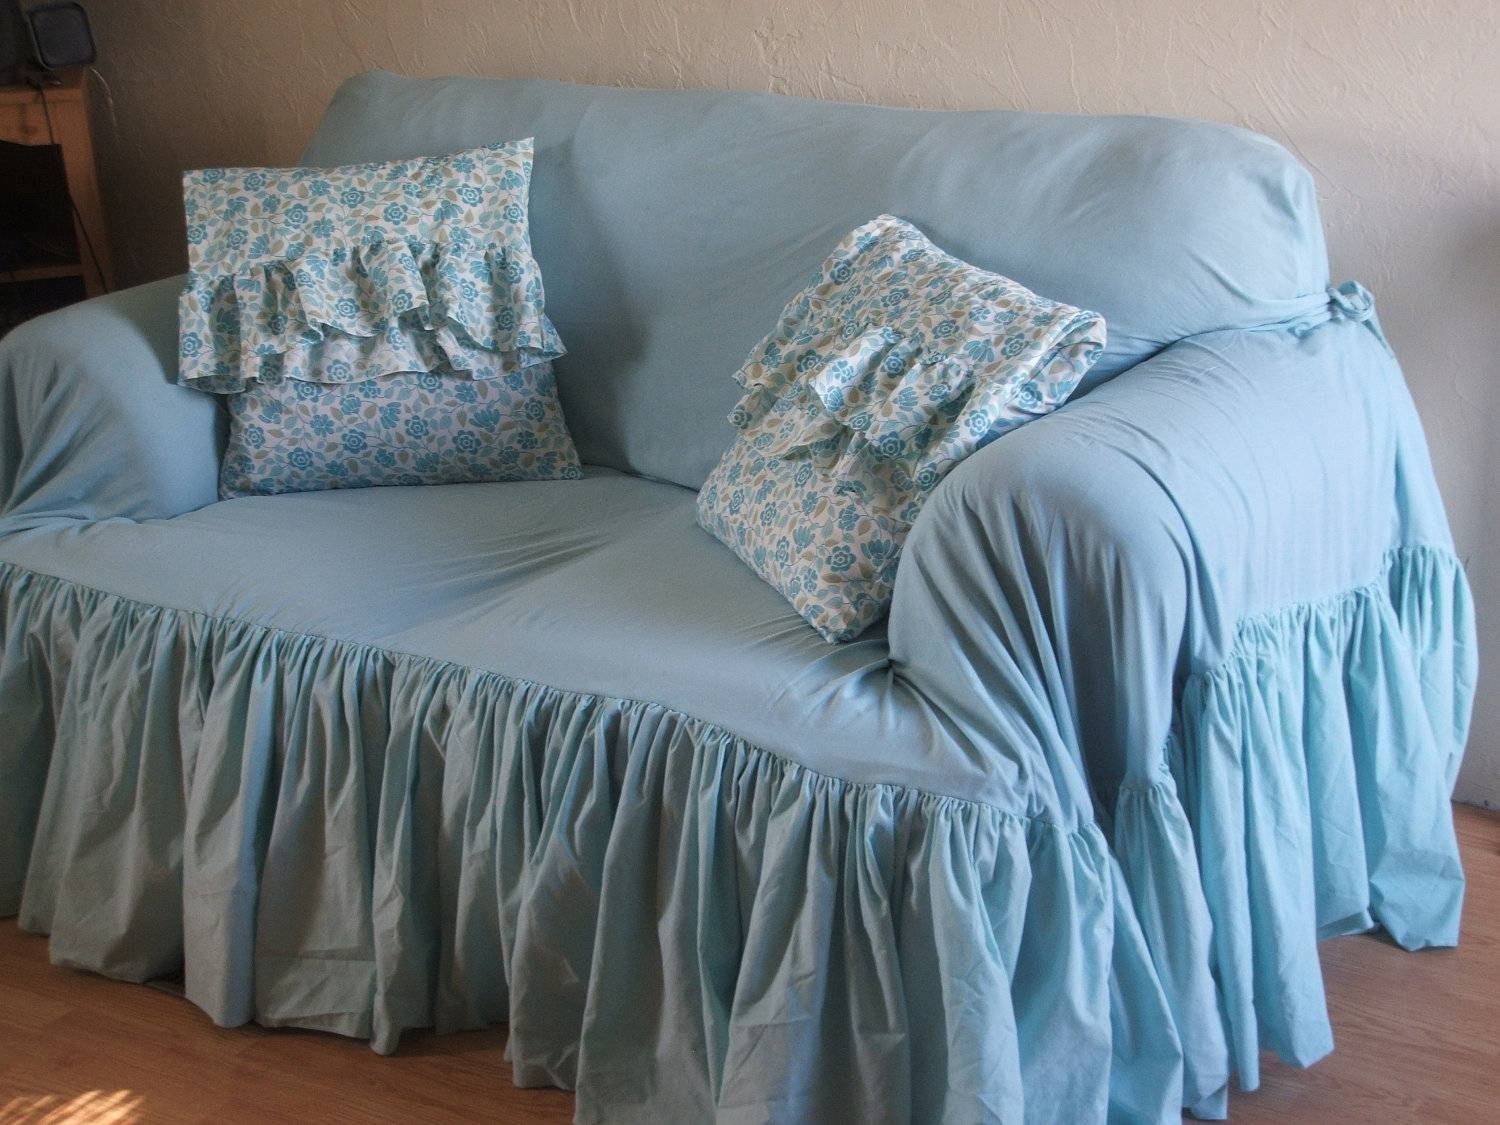 Chic Sofas And Shabby Chic Slipcovers For Sofas intended for Shabby Slipcovers (Image 2 of 15)